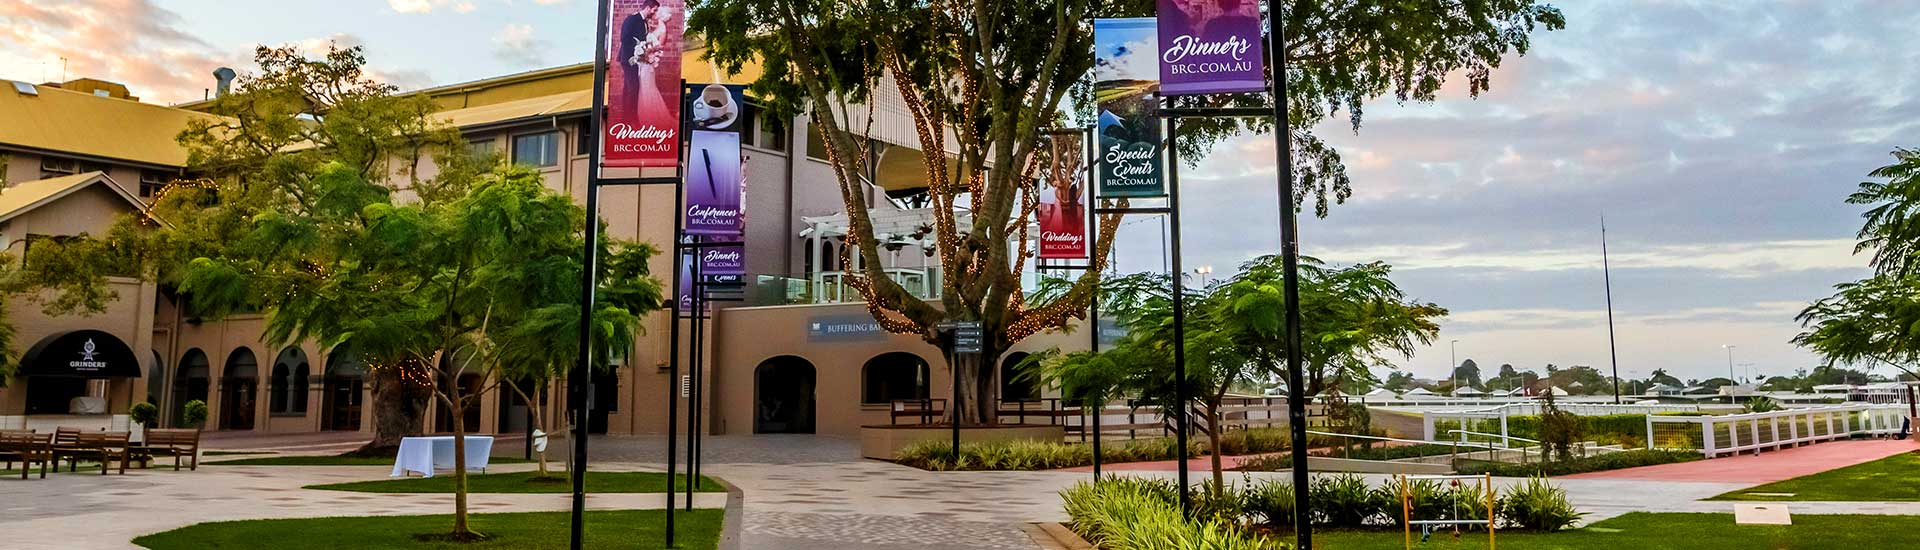 Brisbane Racing Club offers flexible indoor and outdoor function spaces across Doomben and Eagle Farm Racecourse that cater for all styles of events